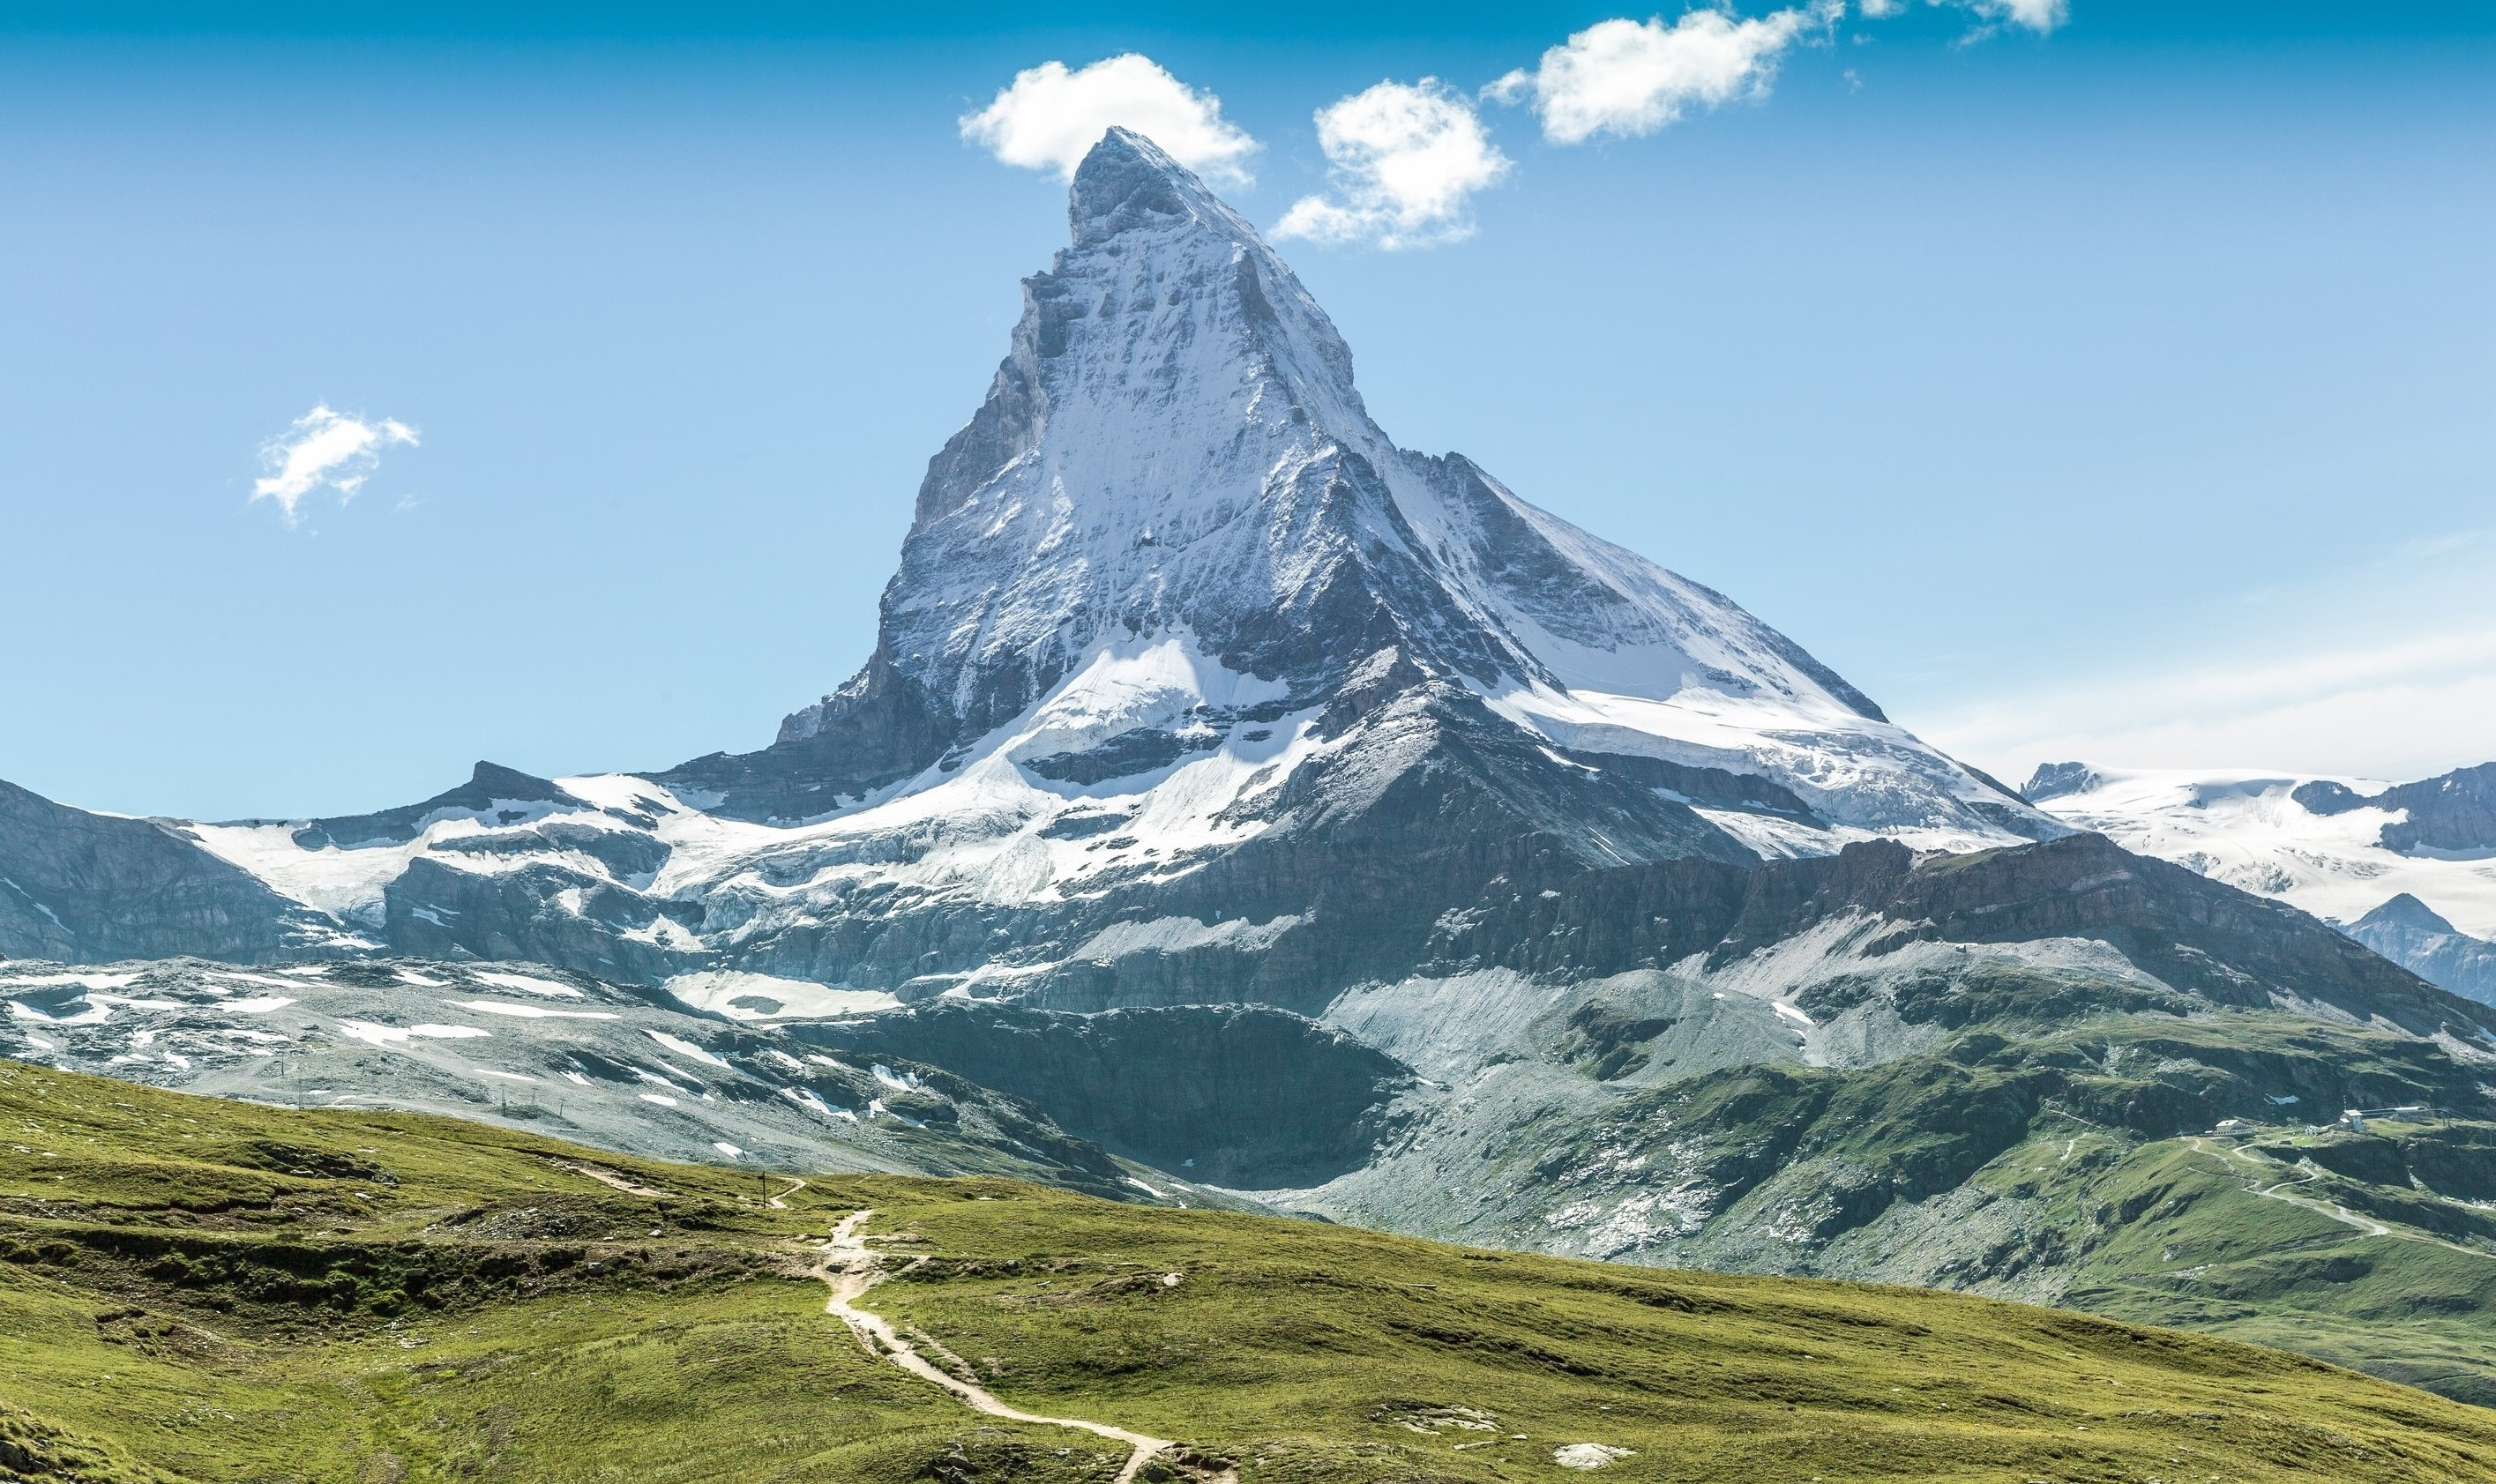 Matterhorn Hd Wallpaper 64 Images